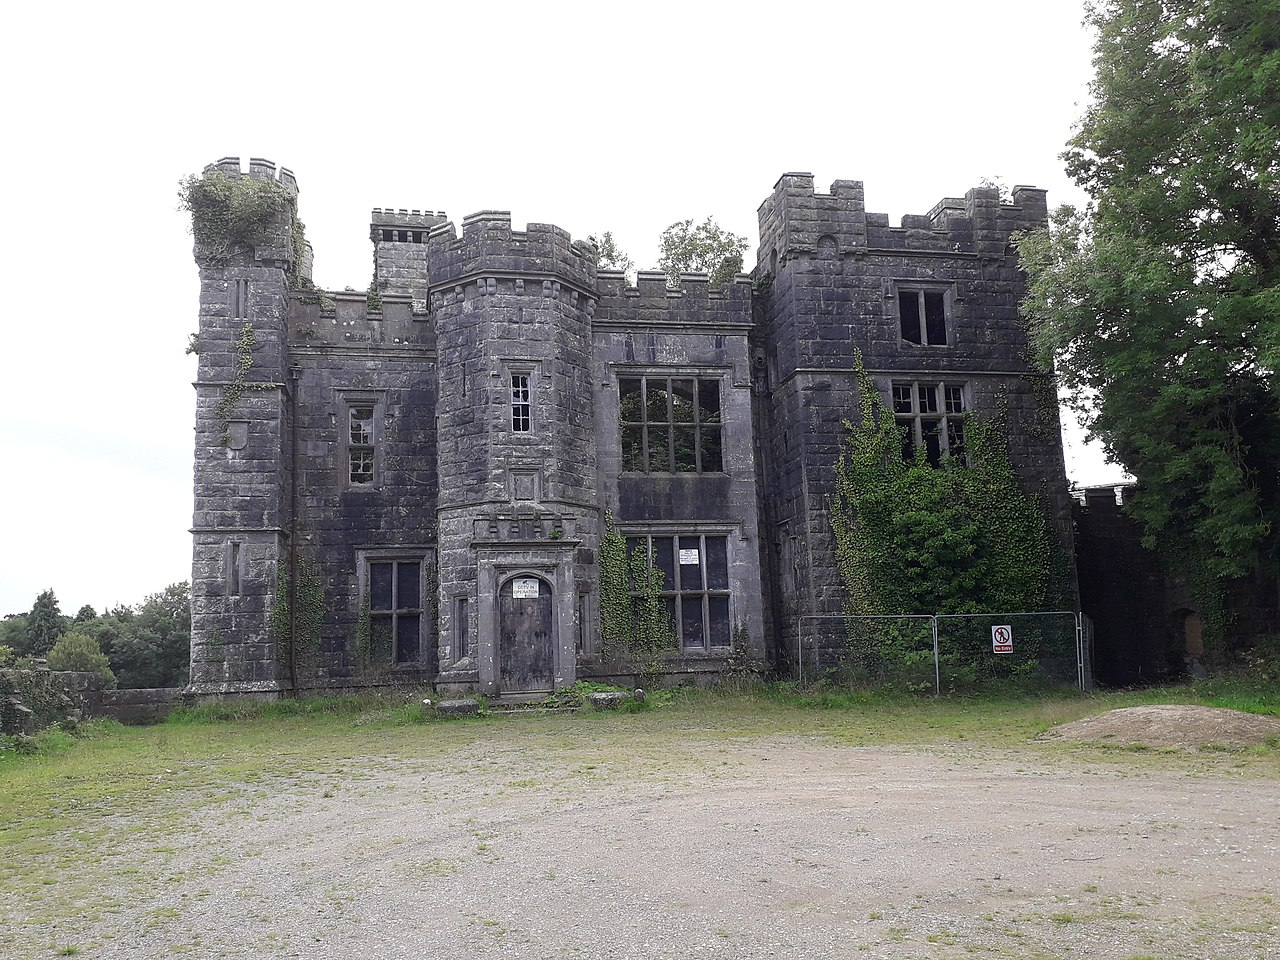 an old gutted out castle saunderson